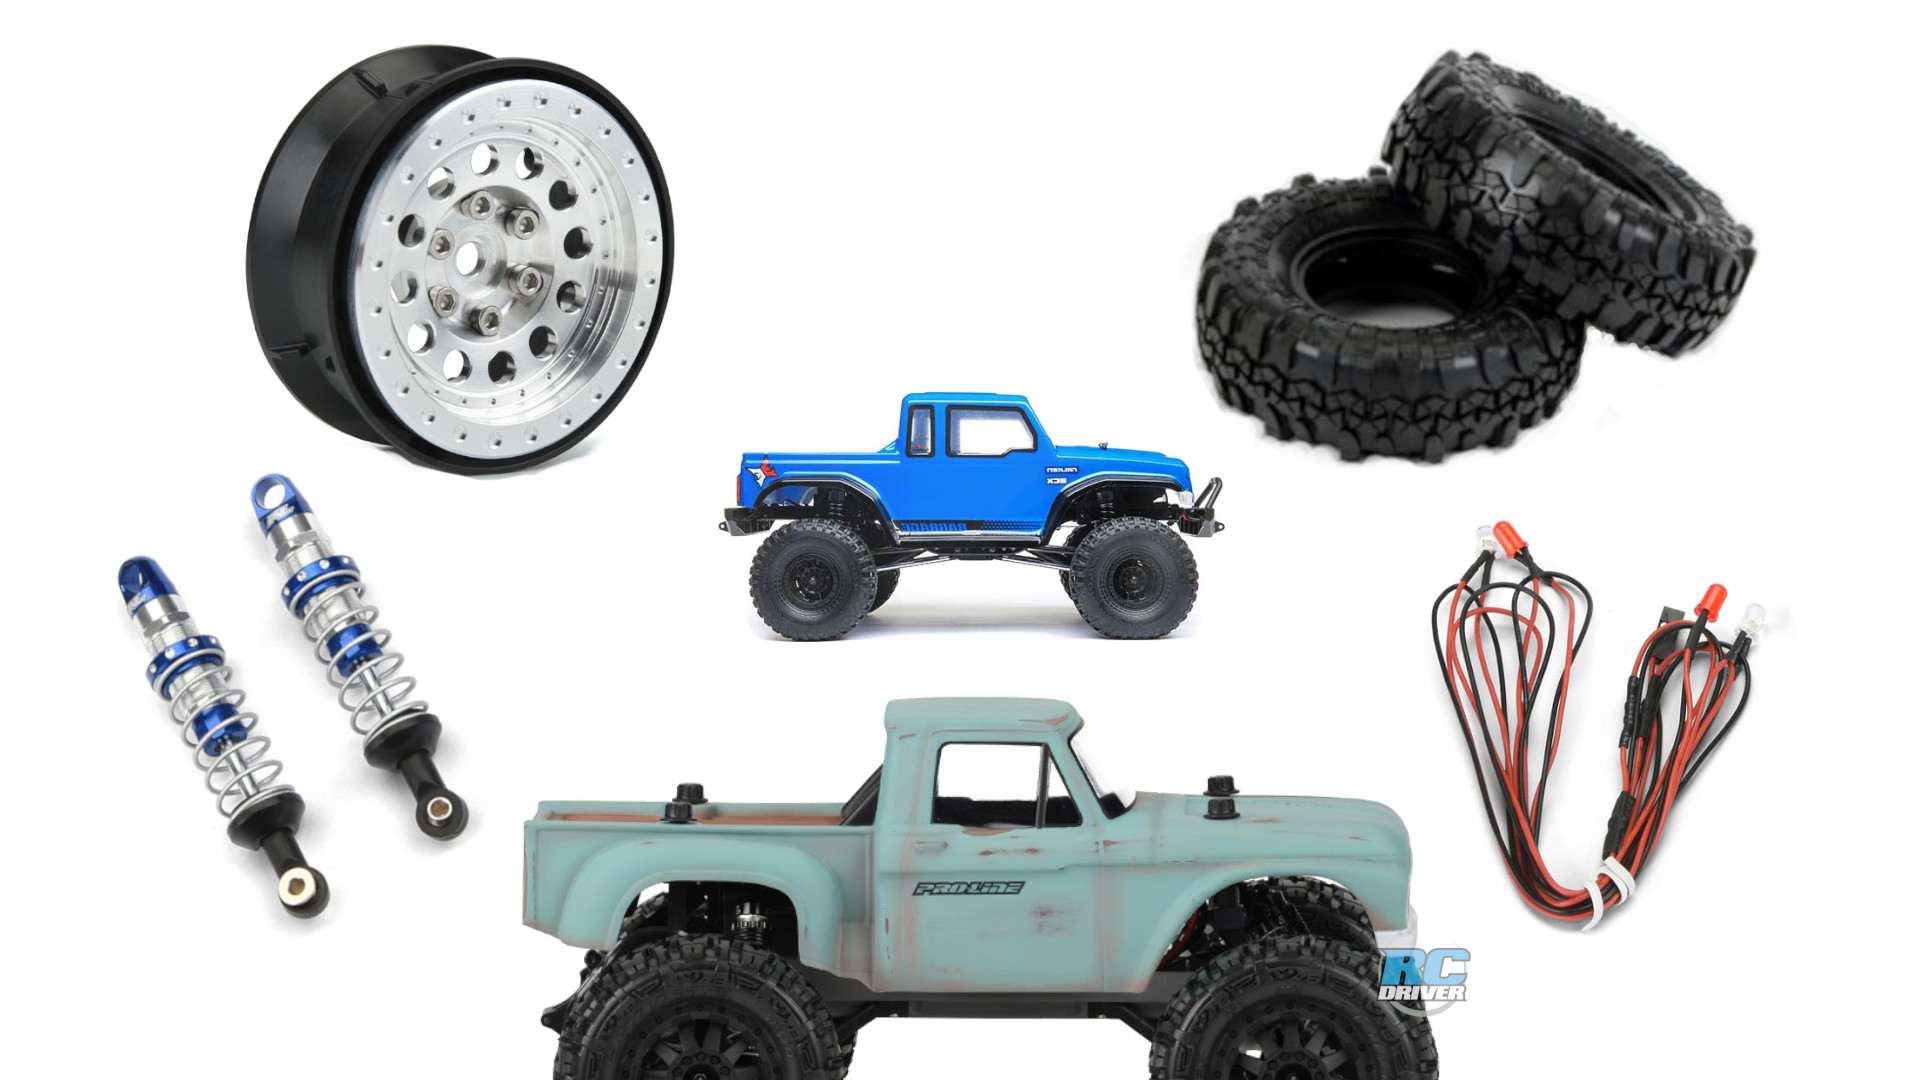 ECX Barrage goes from ordinary to extraordinary with Pro-Line gear